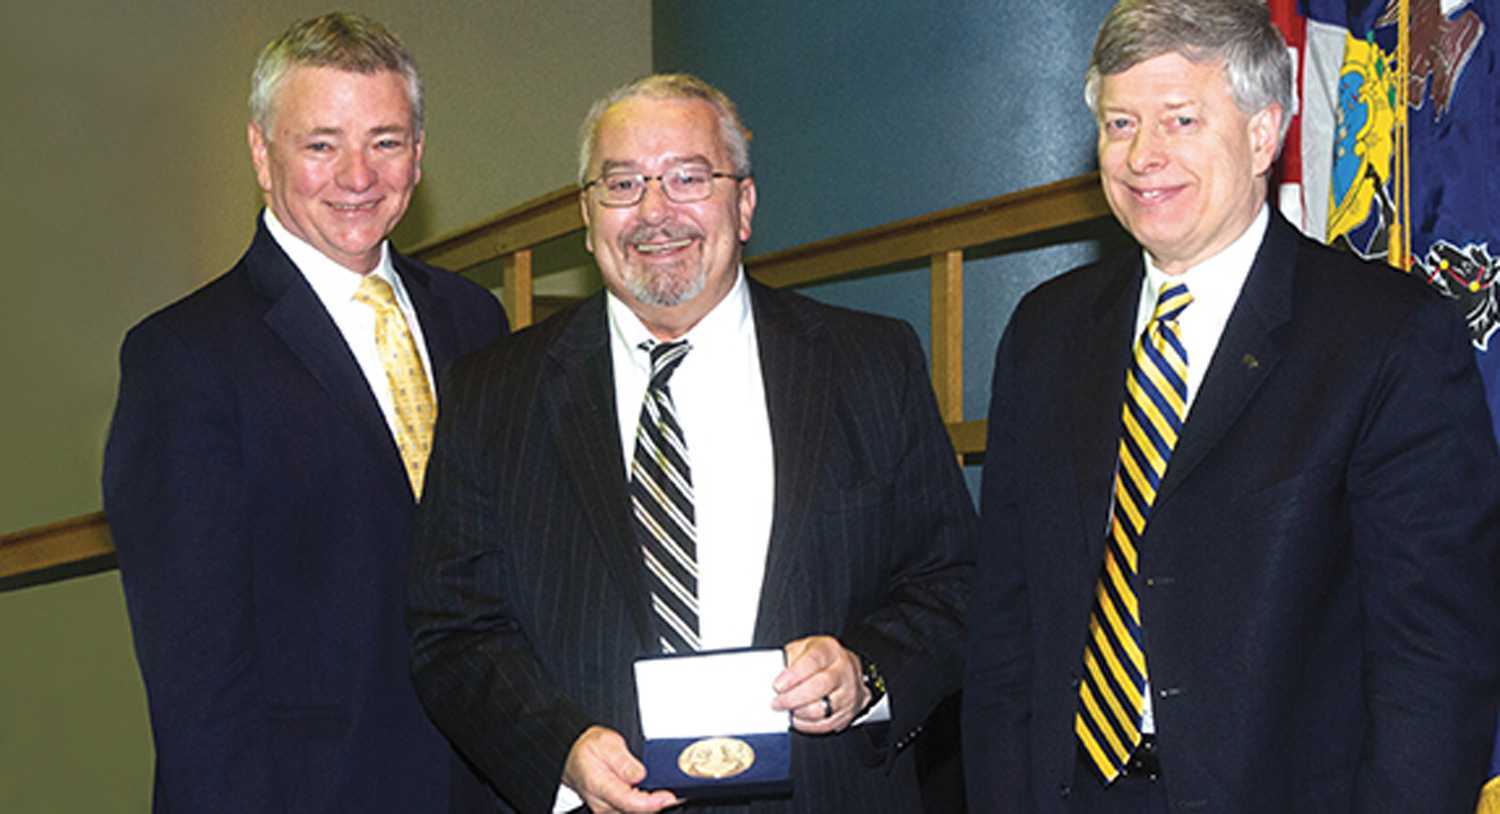 Jerome Cochran (center) was awarded Pitt's 225th Anniversary Medallion in February 2013 at a Board of Trustees meeting. (Photo via PittChronicle)